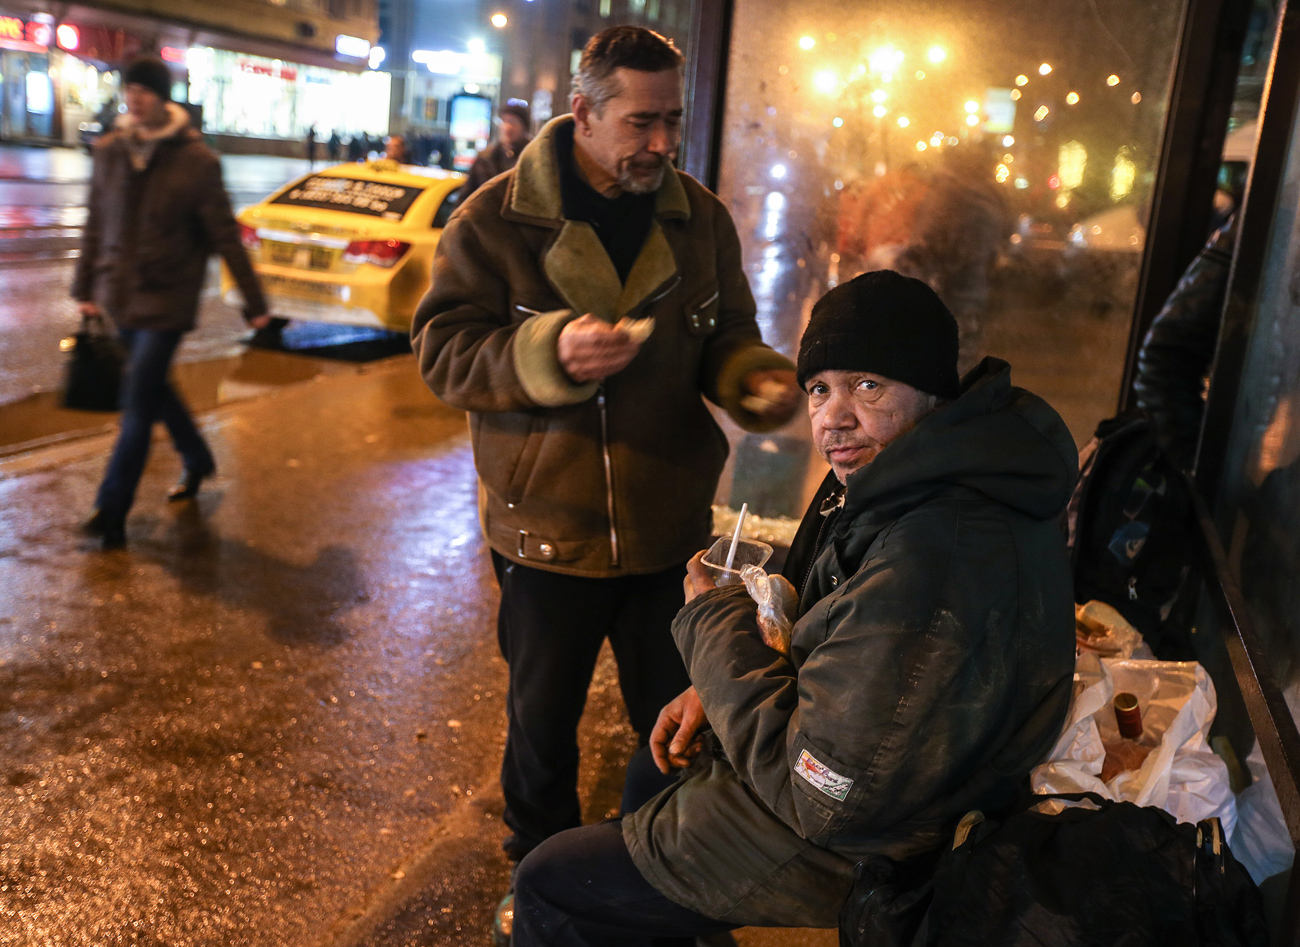 Homeless people seen at a bus stop after receiving food handed out by employees of the Spravedlivaya Pomosch ('Just Aid') Fund.